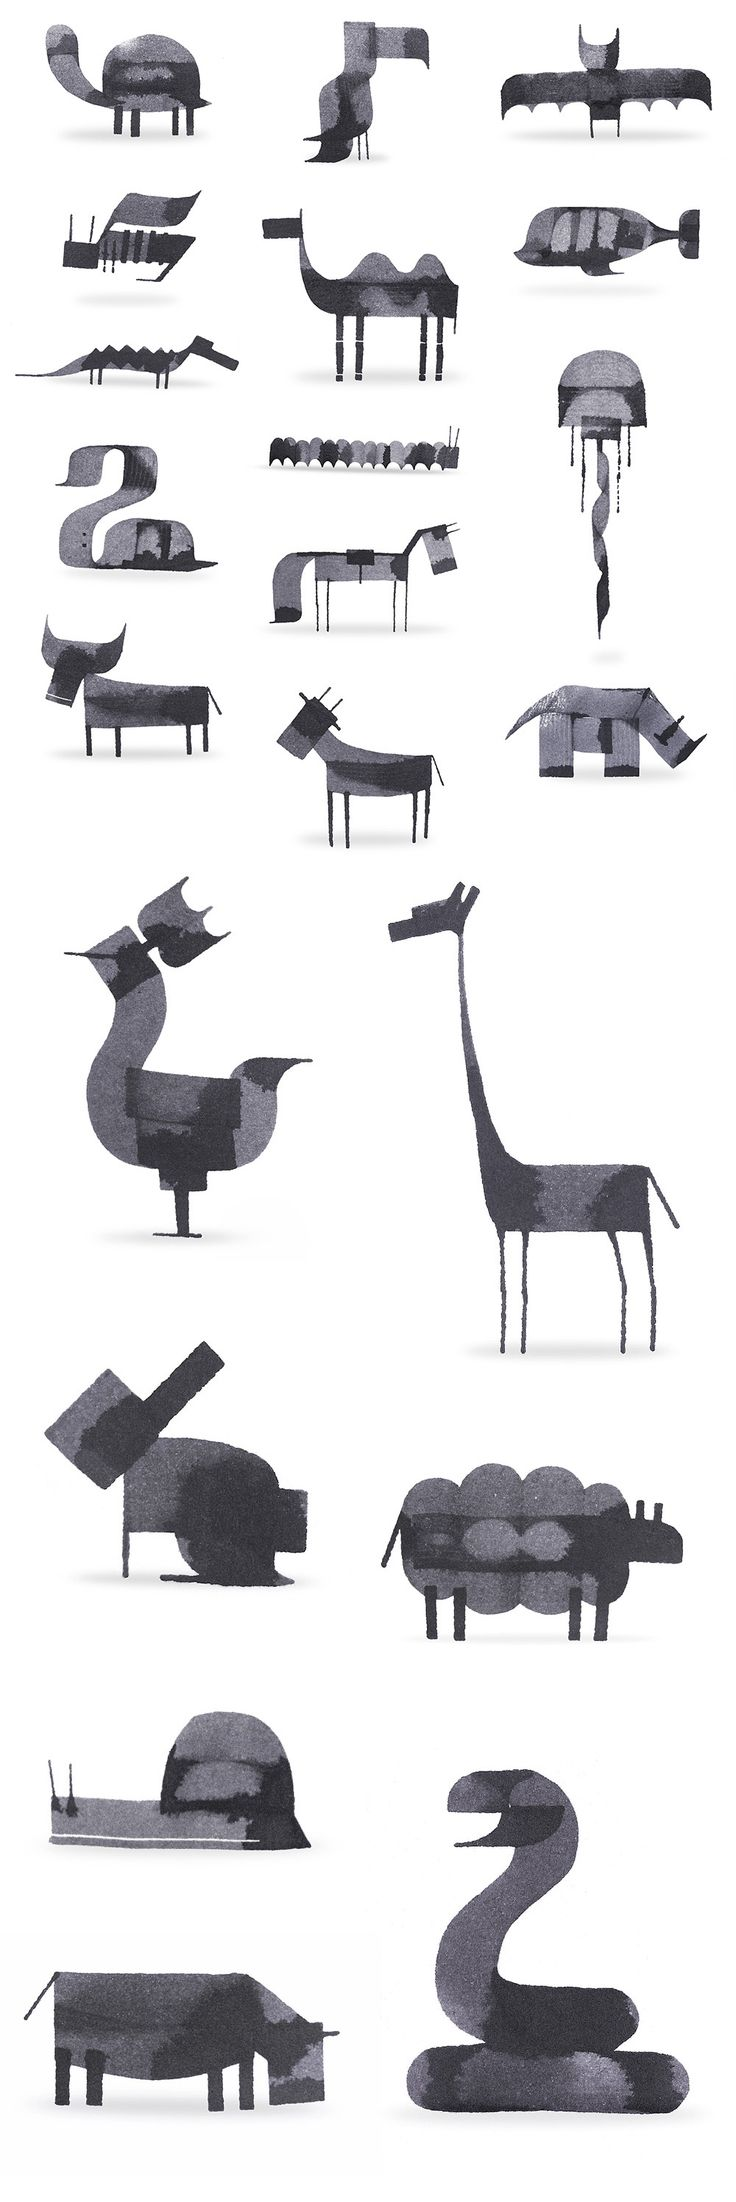 New Calligraphy Animals By Andrew Fox Illustration